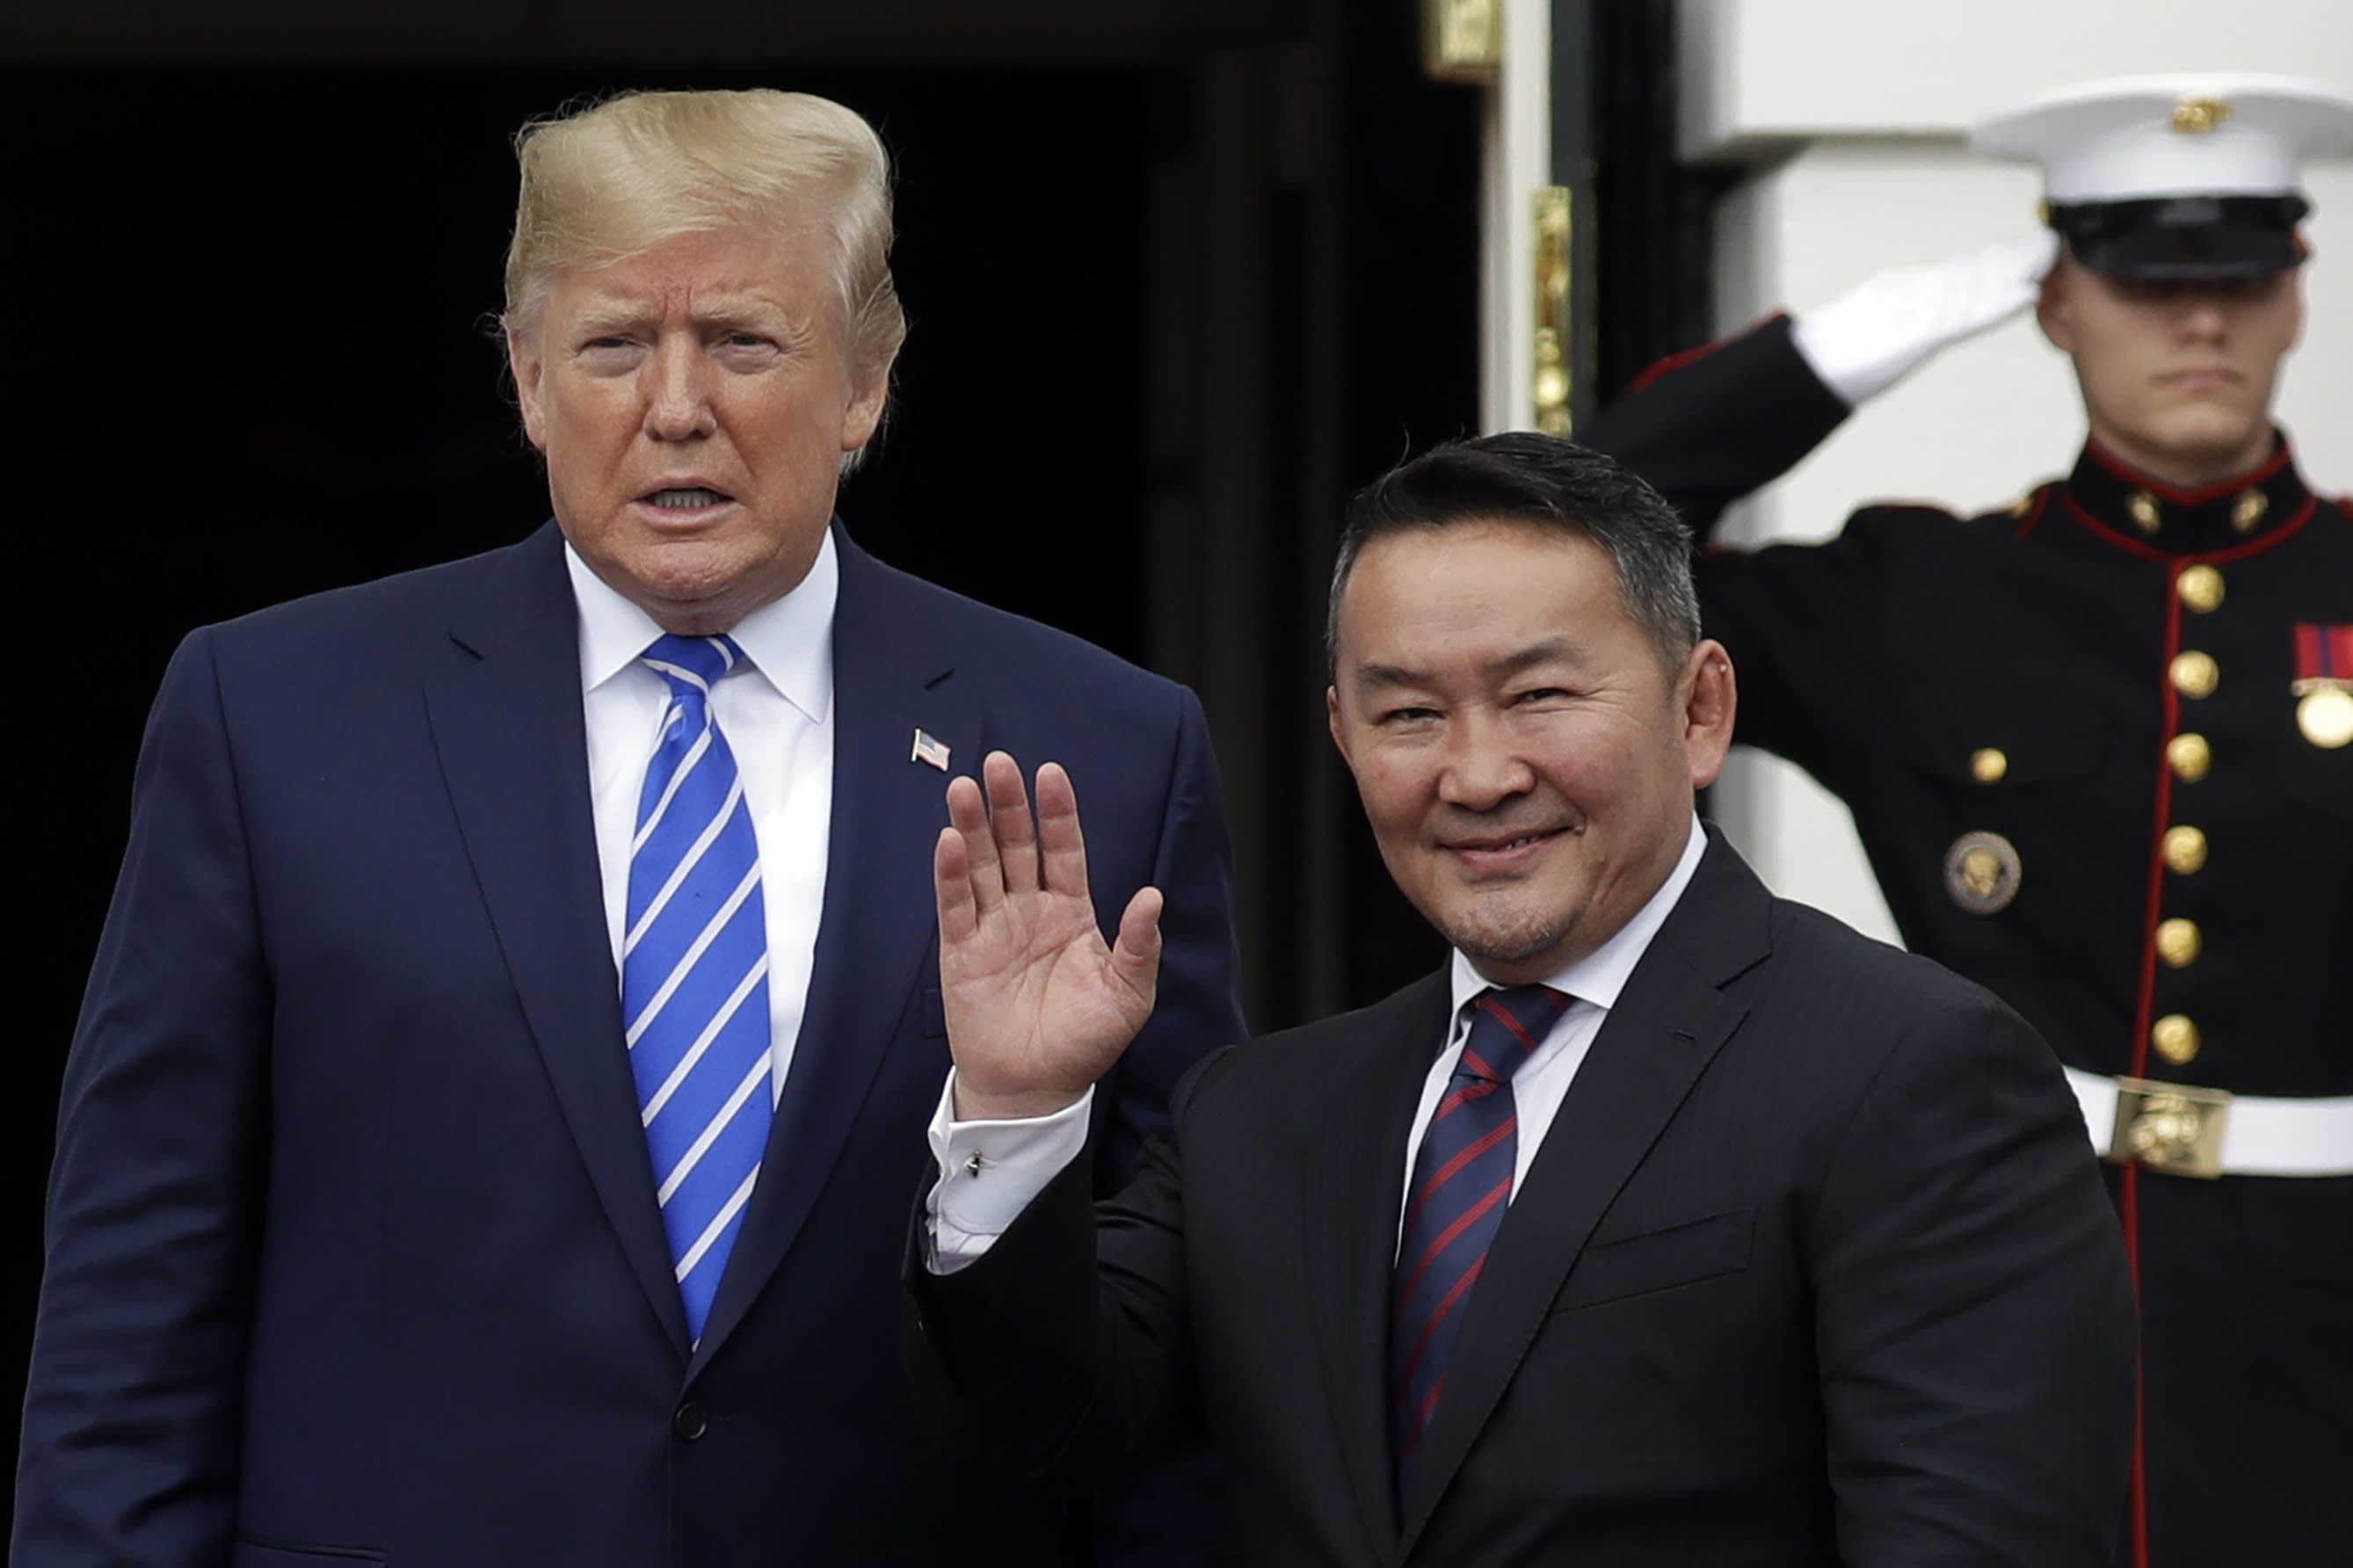 'Victory': Trump reveals name for Mongolian gift horse